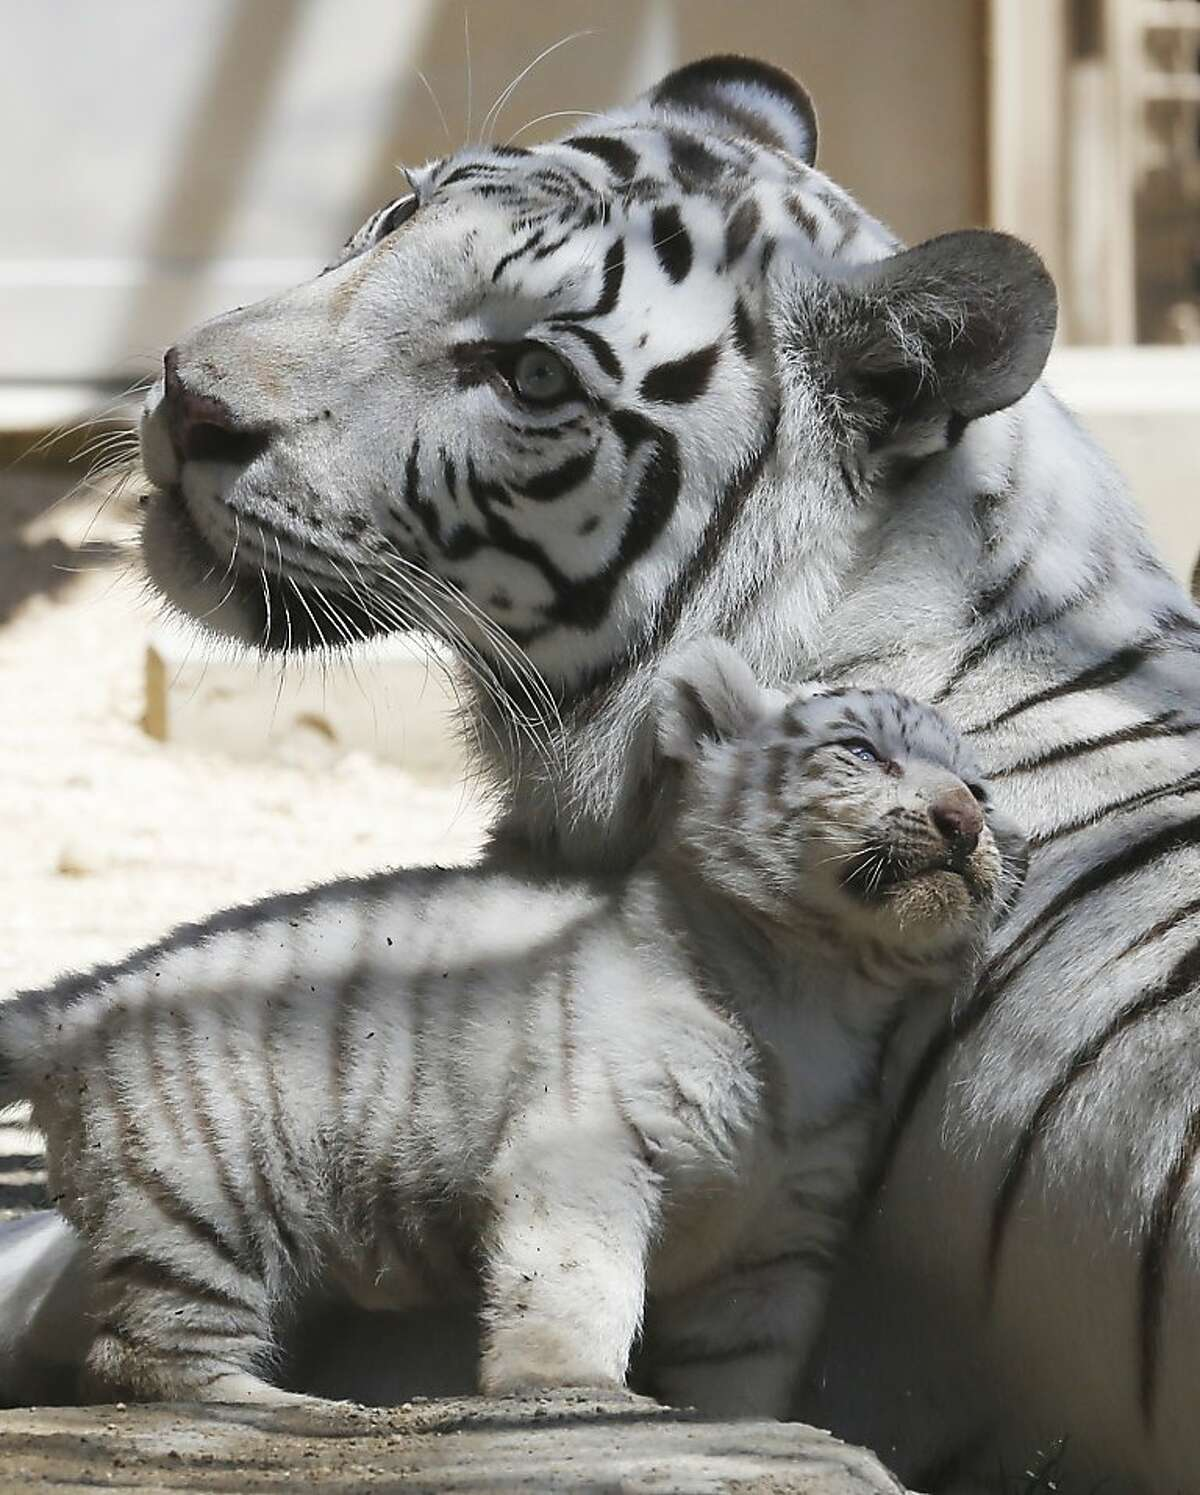 Mommy is so soft and fluffy. A 7-year-old white tiger sits with one of her cubs at Tobu Zoo. Her four newborn white tiger cubs made their first public appearance at the zoo on Thursday. The four cubs - one female and three males - were born in March.